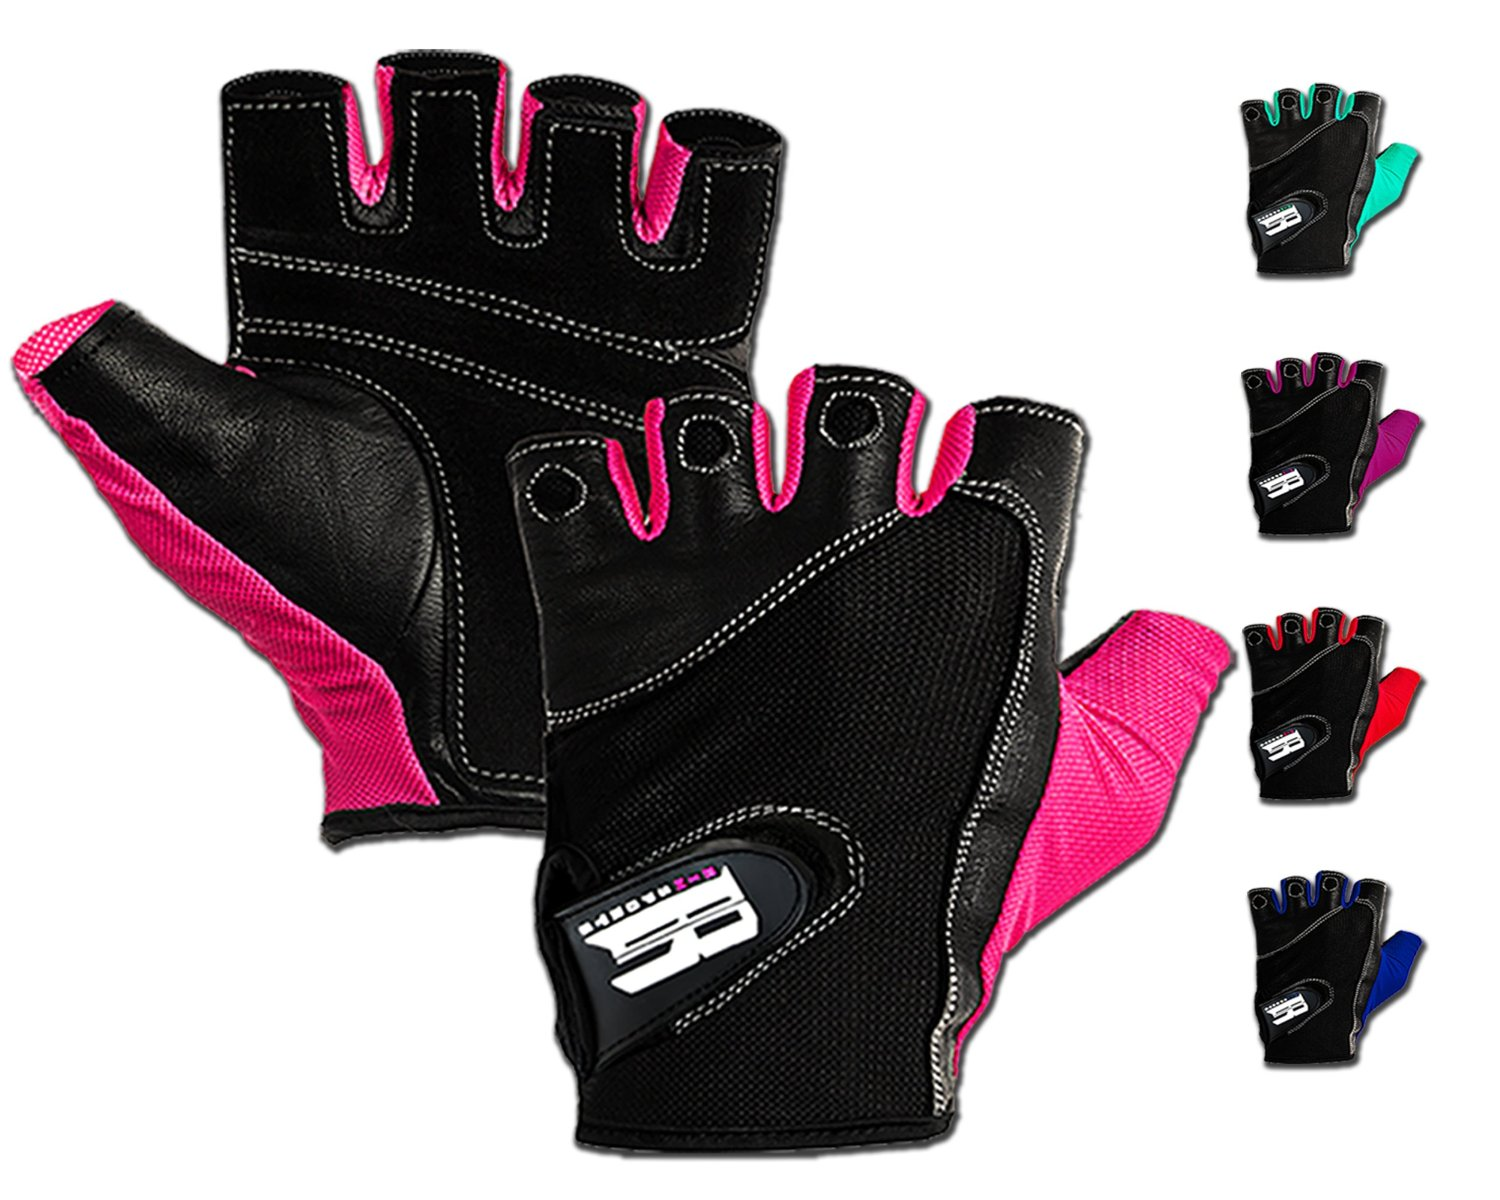 Top 10 Best Weight Lifting Gloves for Women Reviews in 2018